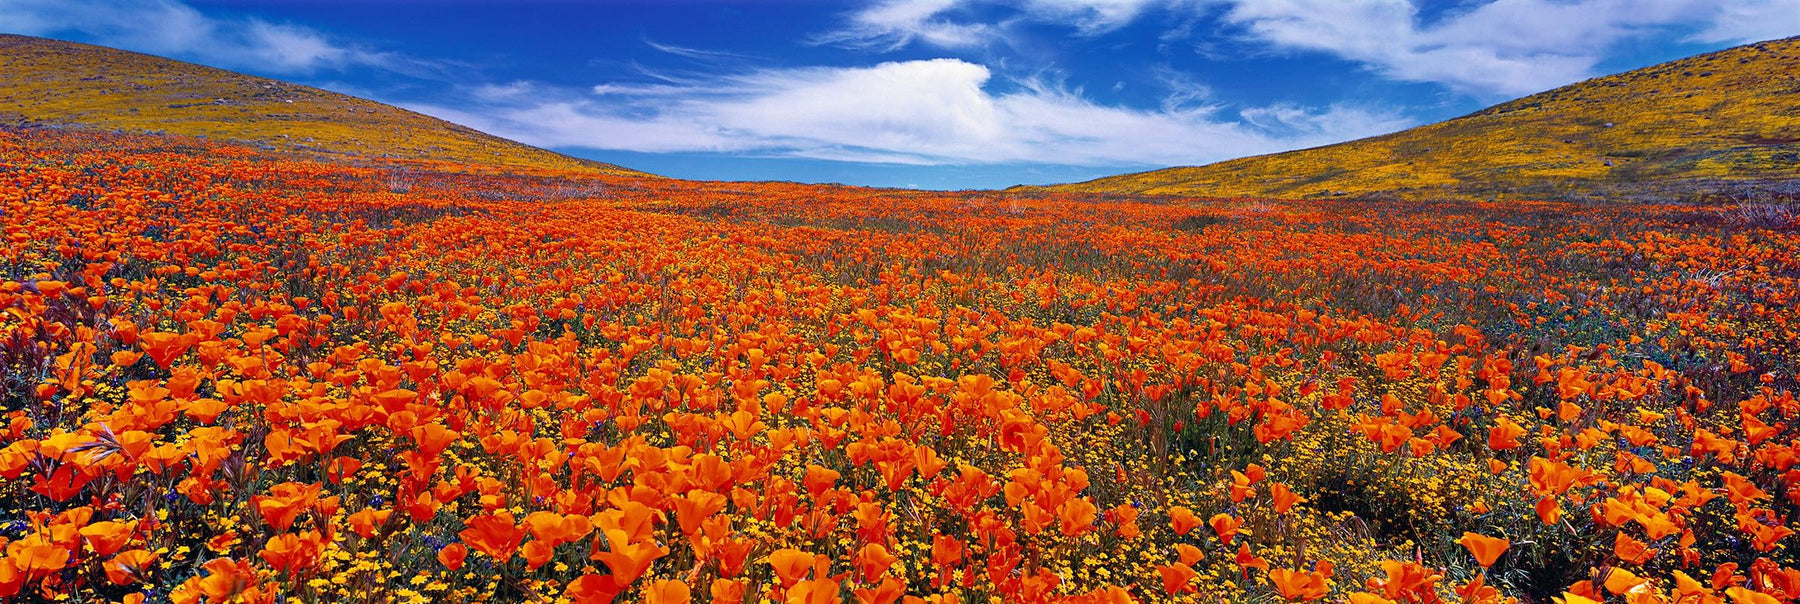 Rolling orange and yellow poppy fields of Antelope Valley Poppy State Reserve California